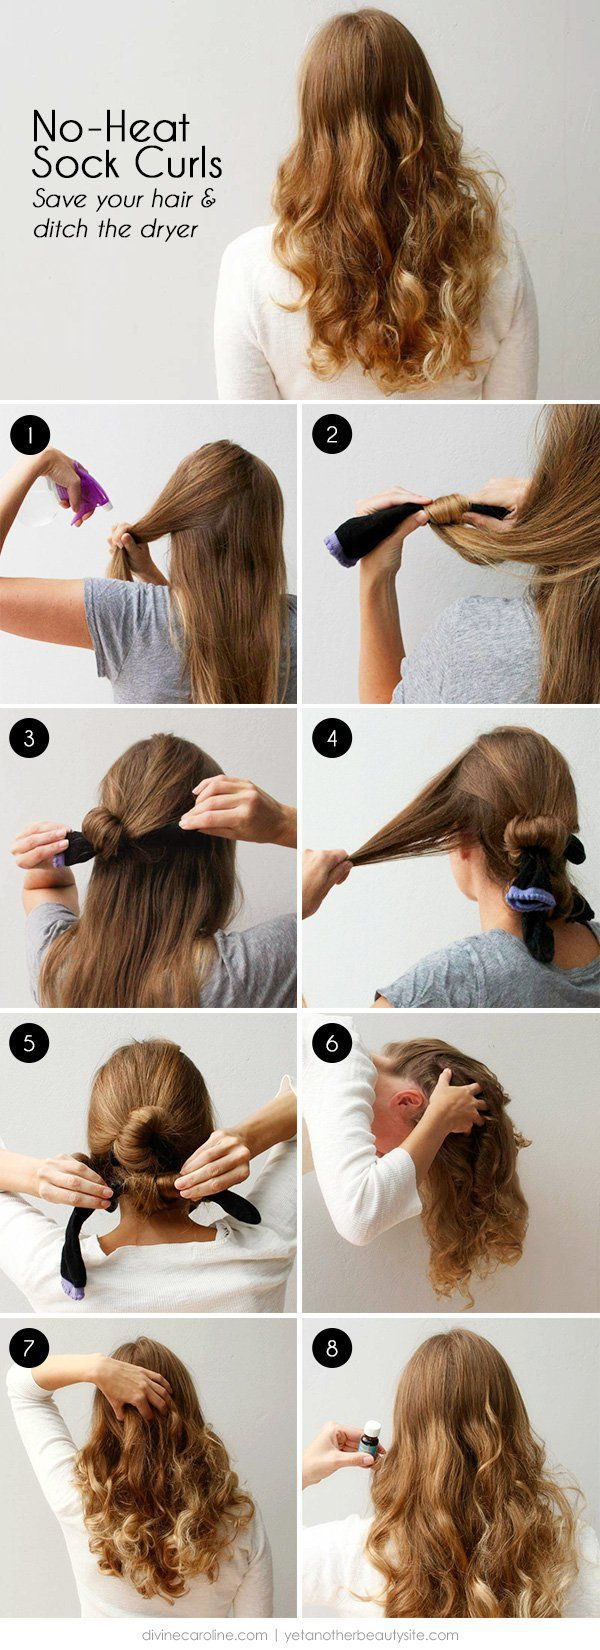 No Heat Curls Overnight is the process of curling your hairs without using the heat products check out the images and learn how to do it.